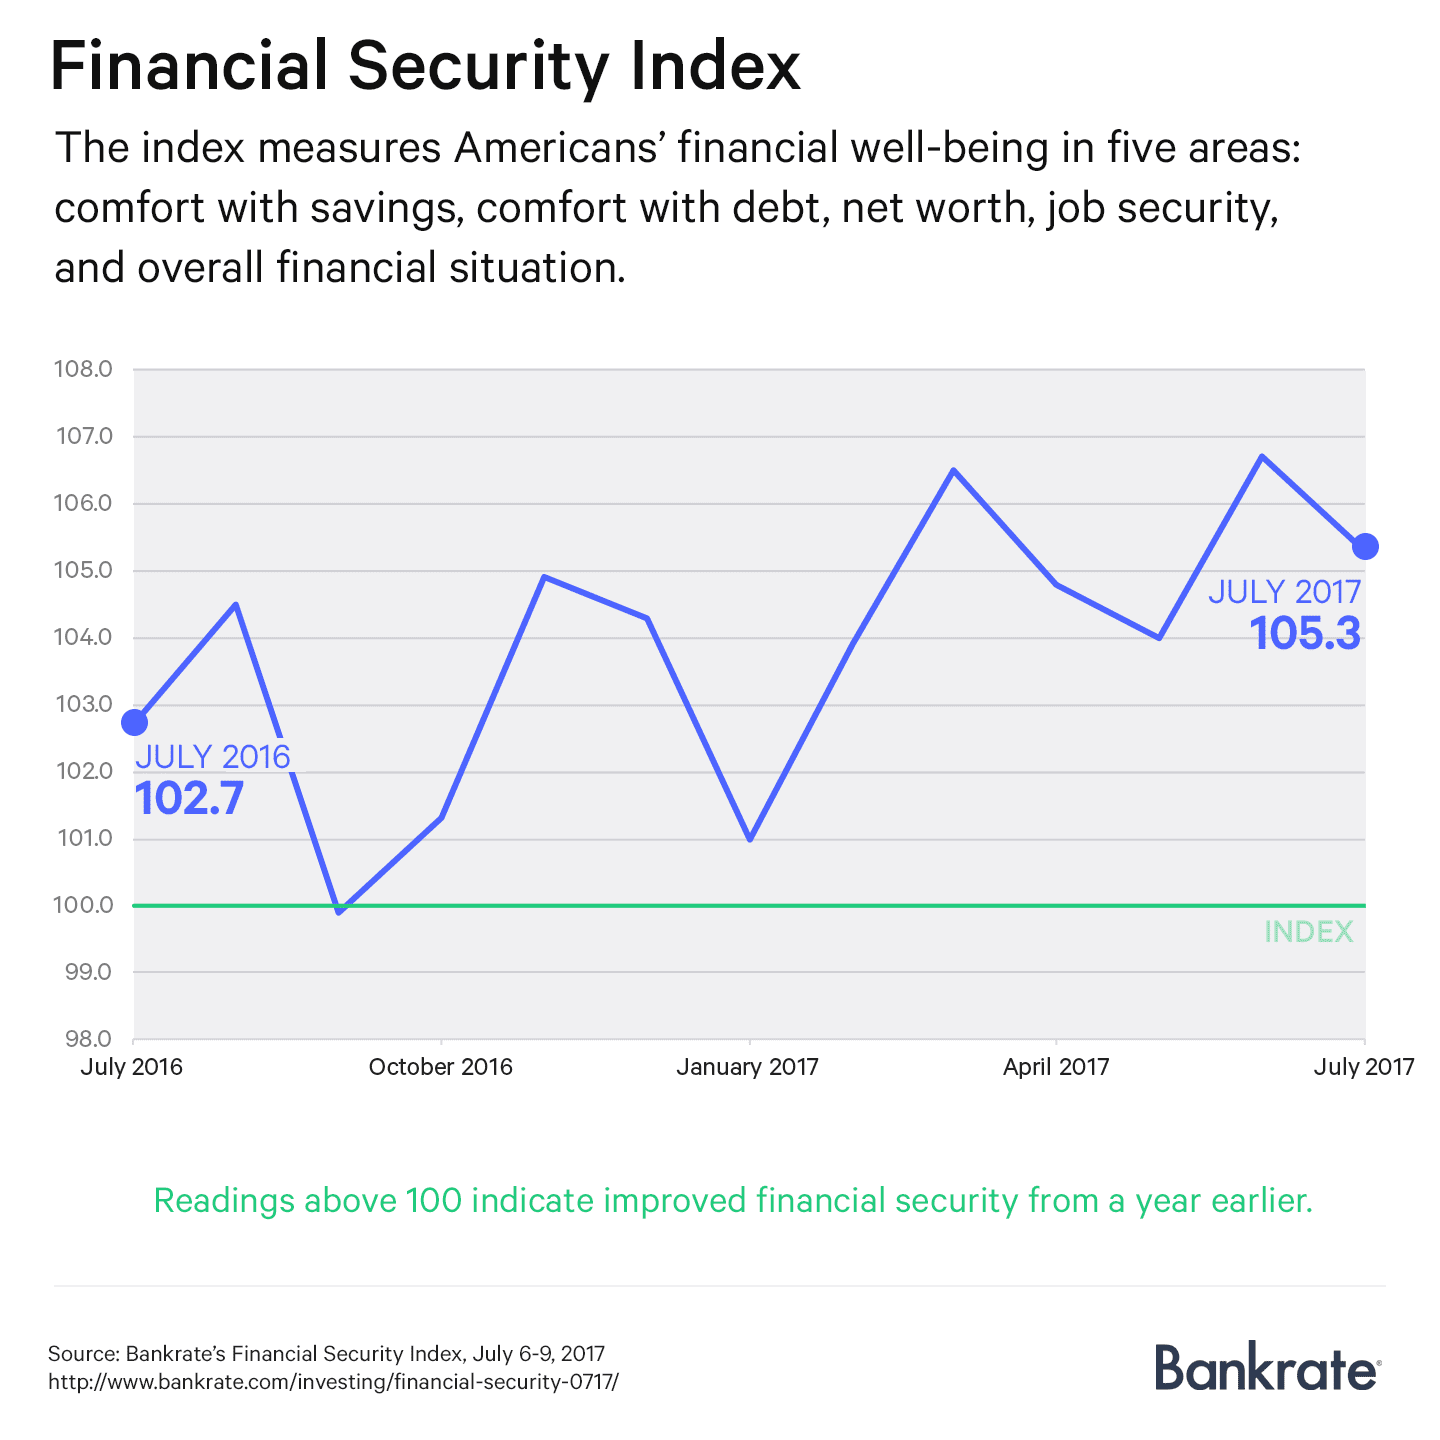 Financial Security Index: July 2017